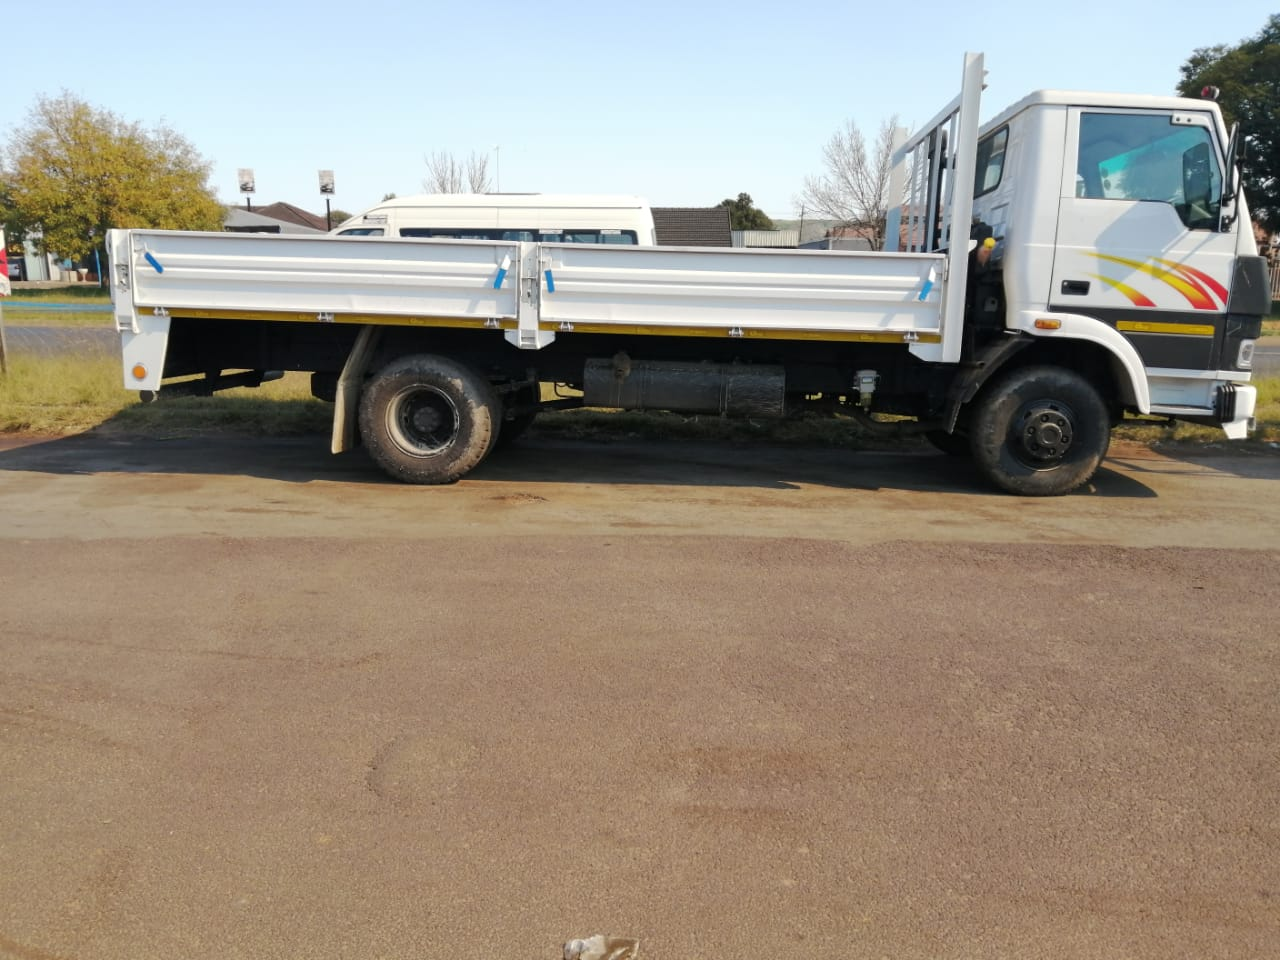 4 Ton Truck - For Deliveries